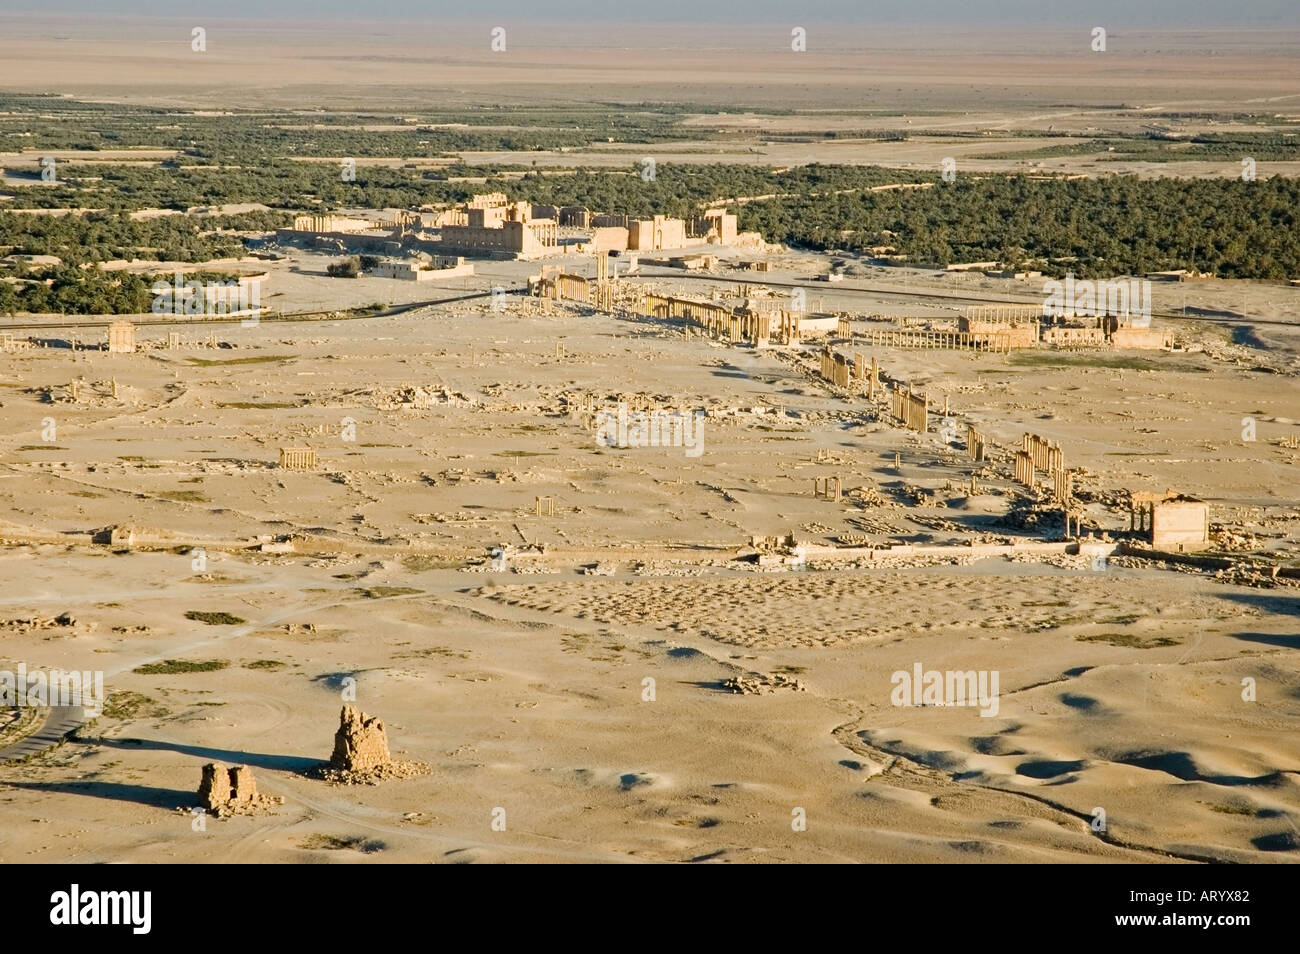 Ancient city of Tadmor, from the Arab Castle, Qalaat Ibn Maan, overlooks Palmyra, Central Syria, Middle East. DSC_5785 - Stock Image